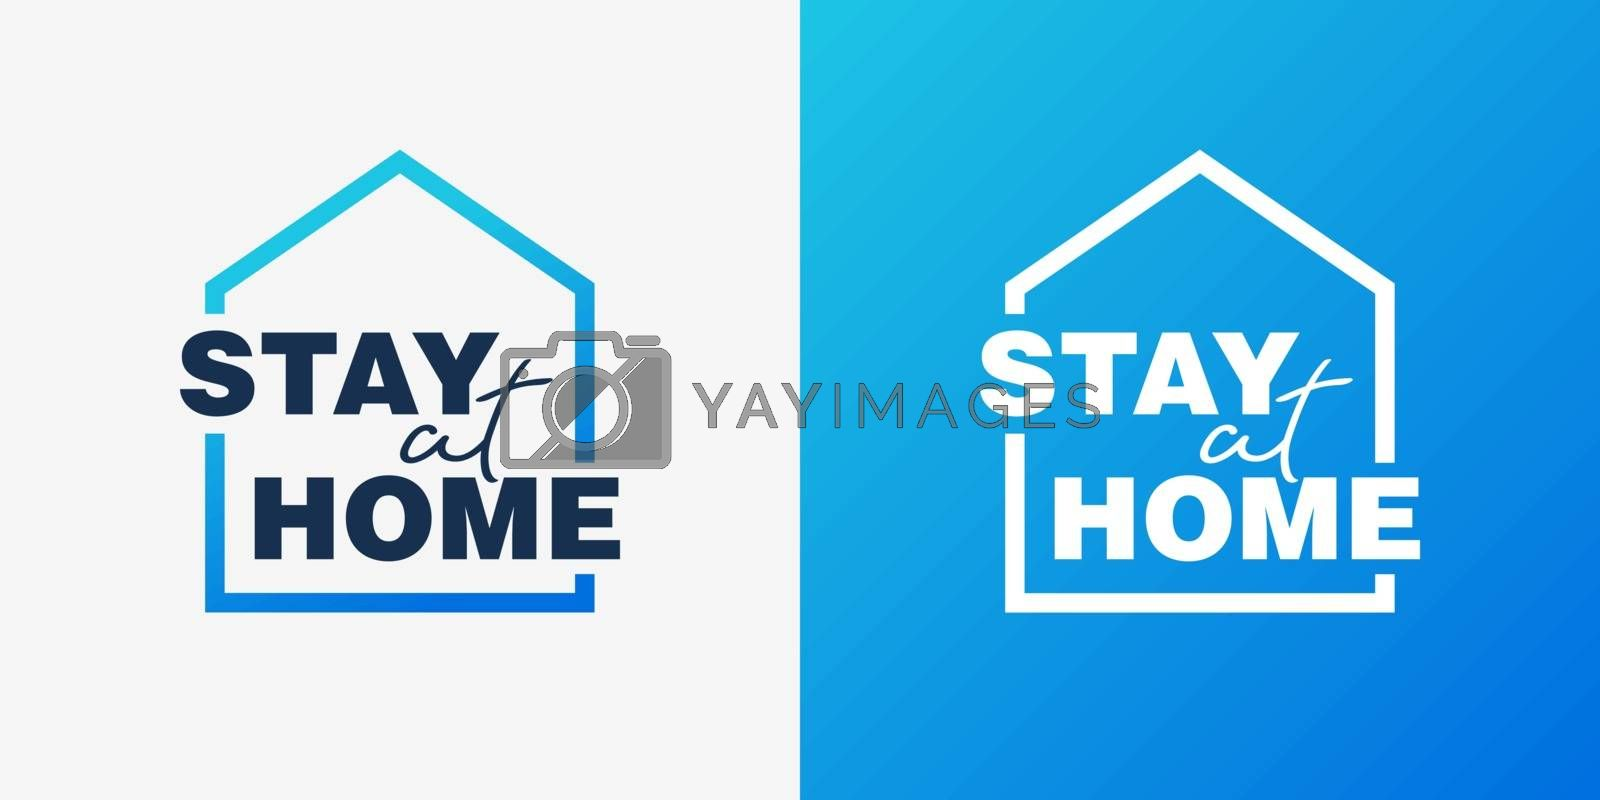 Stay home campaign logo concept by ersp